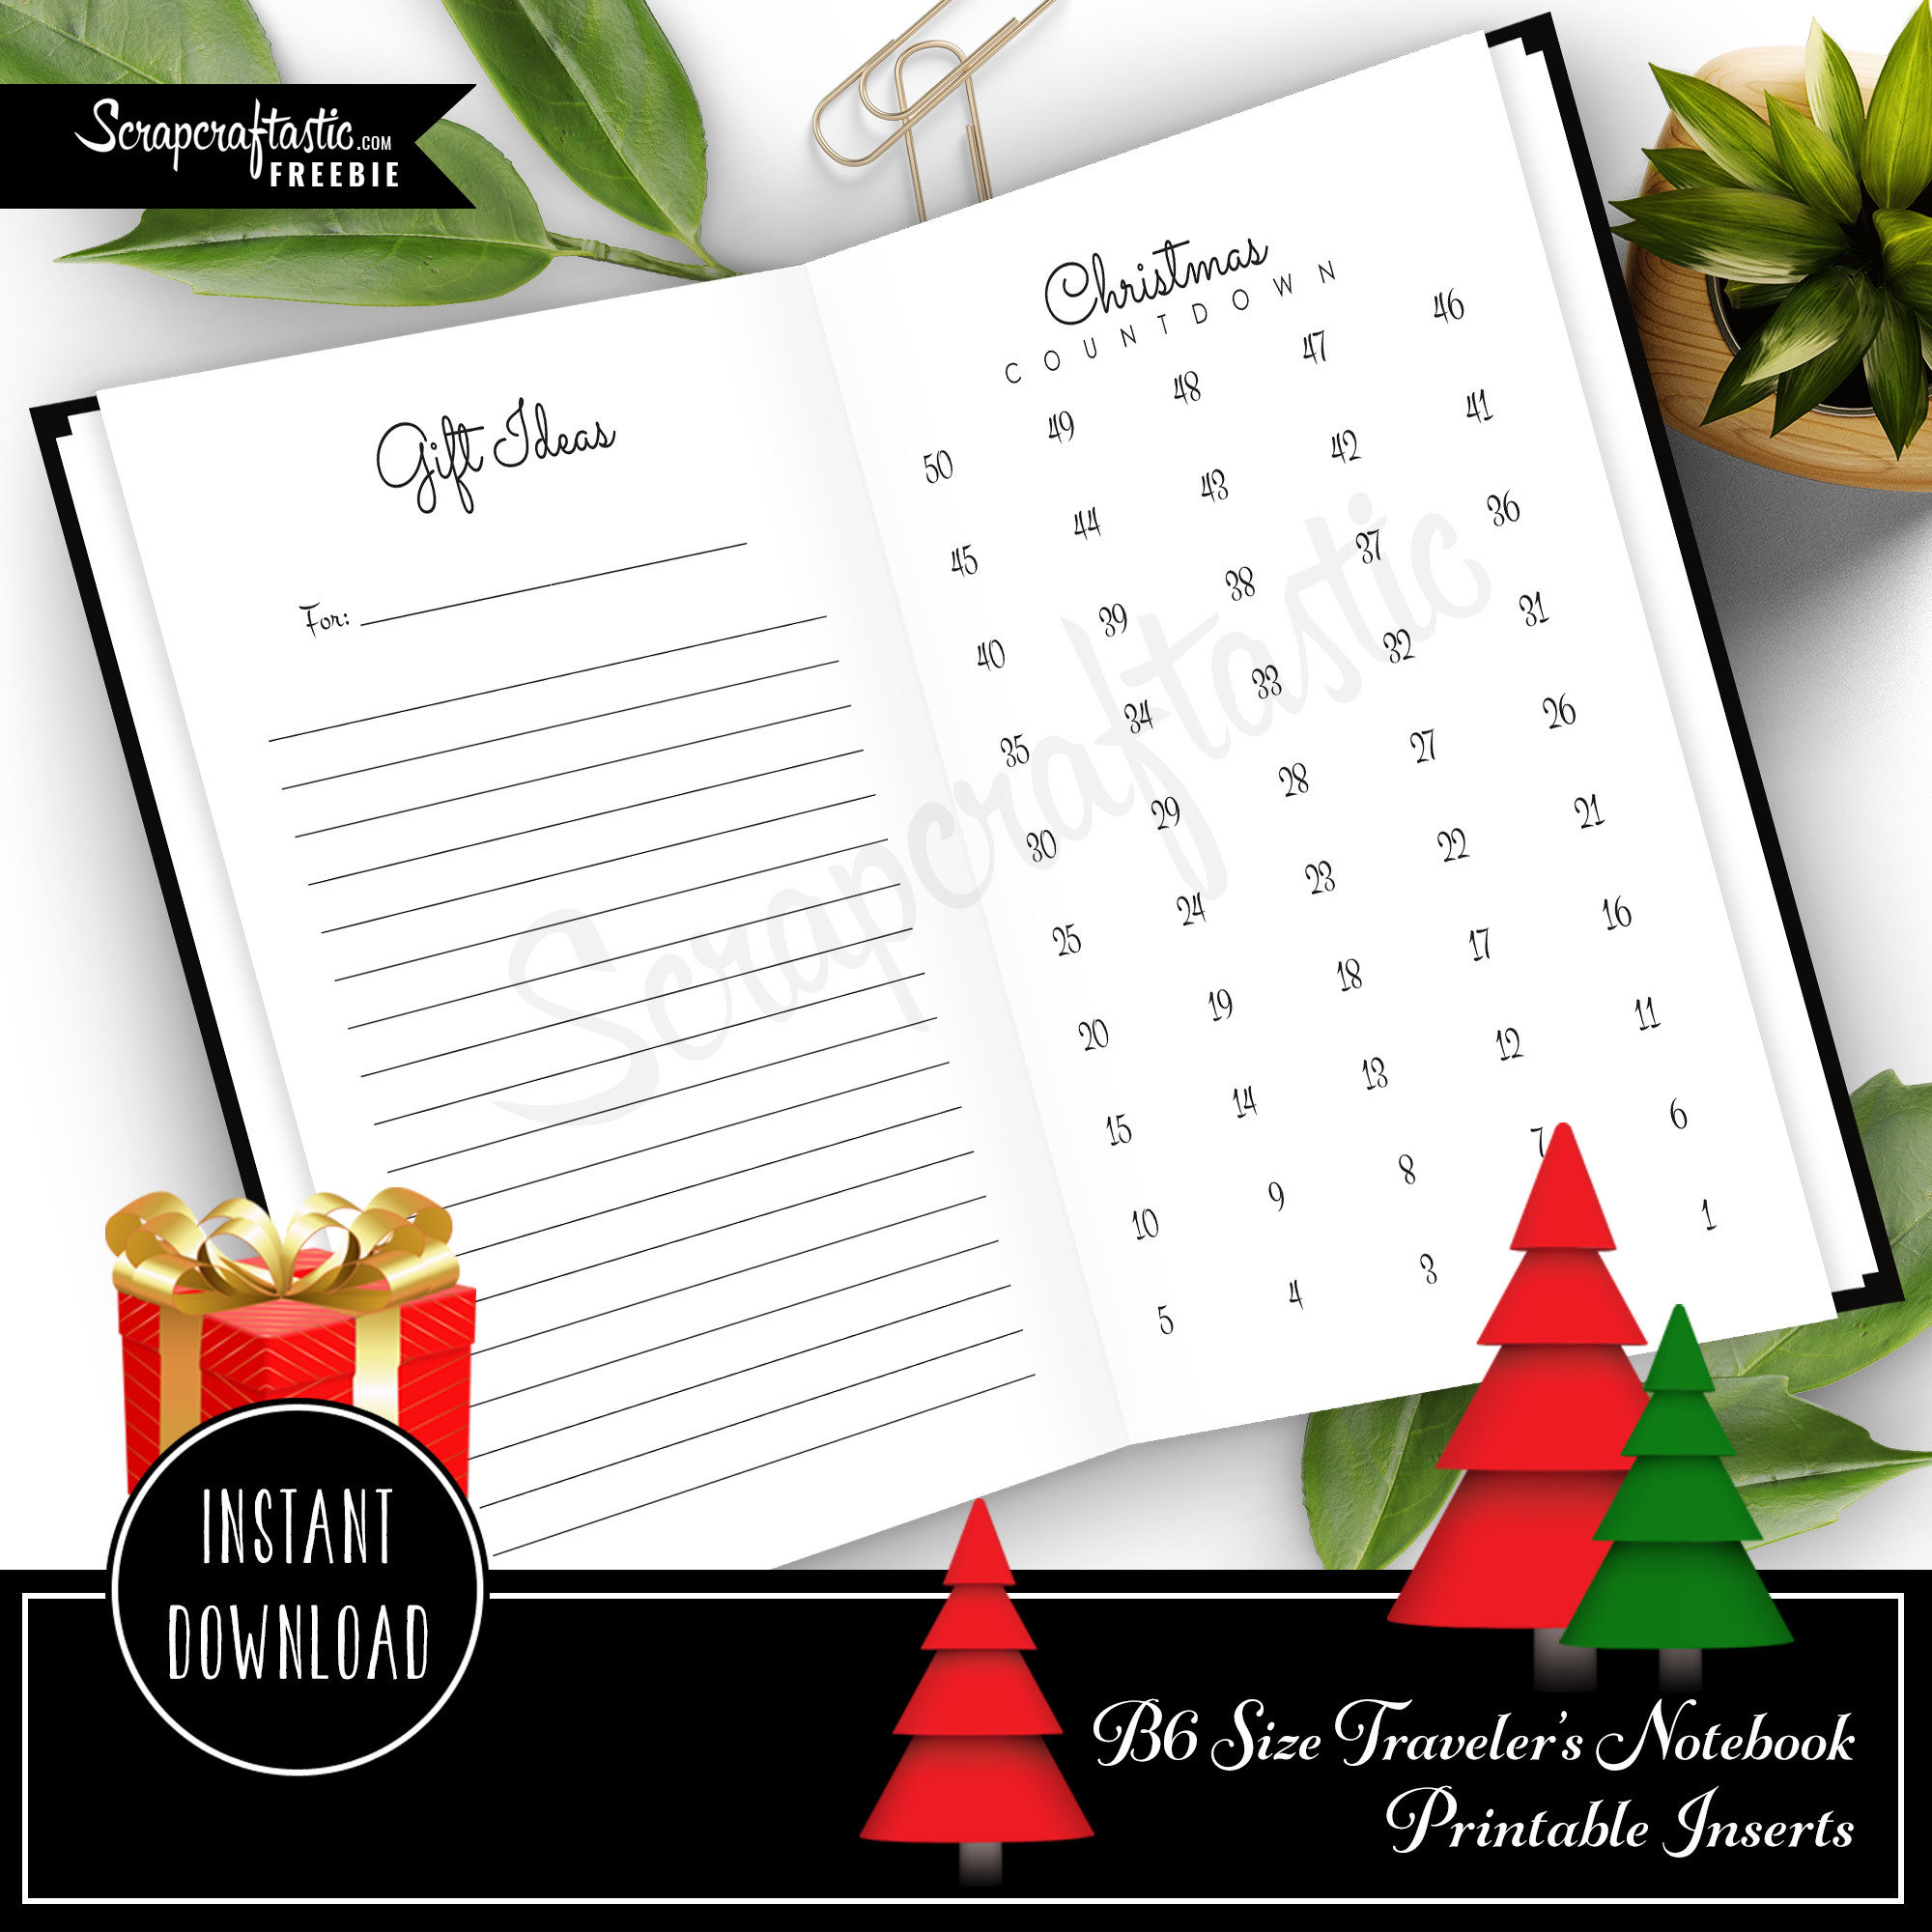 Christmas Countdown and Gift Ideas B6 Traveler's Notebook Inserts 08006